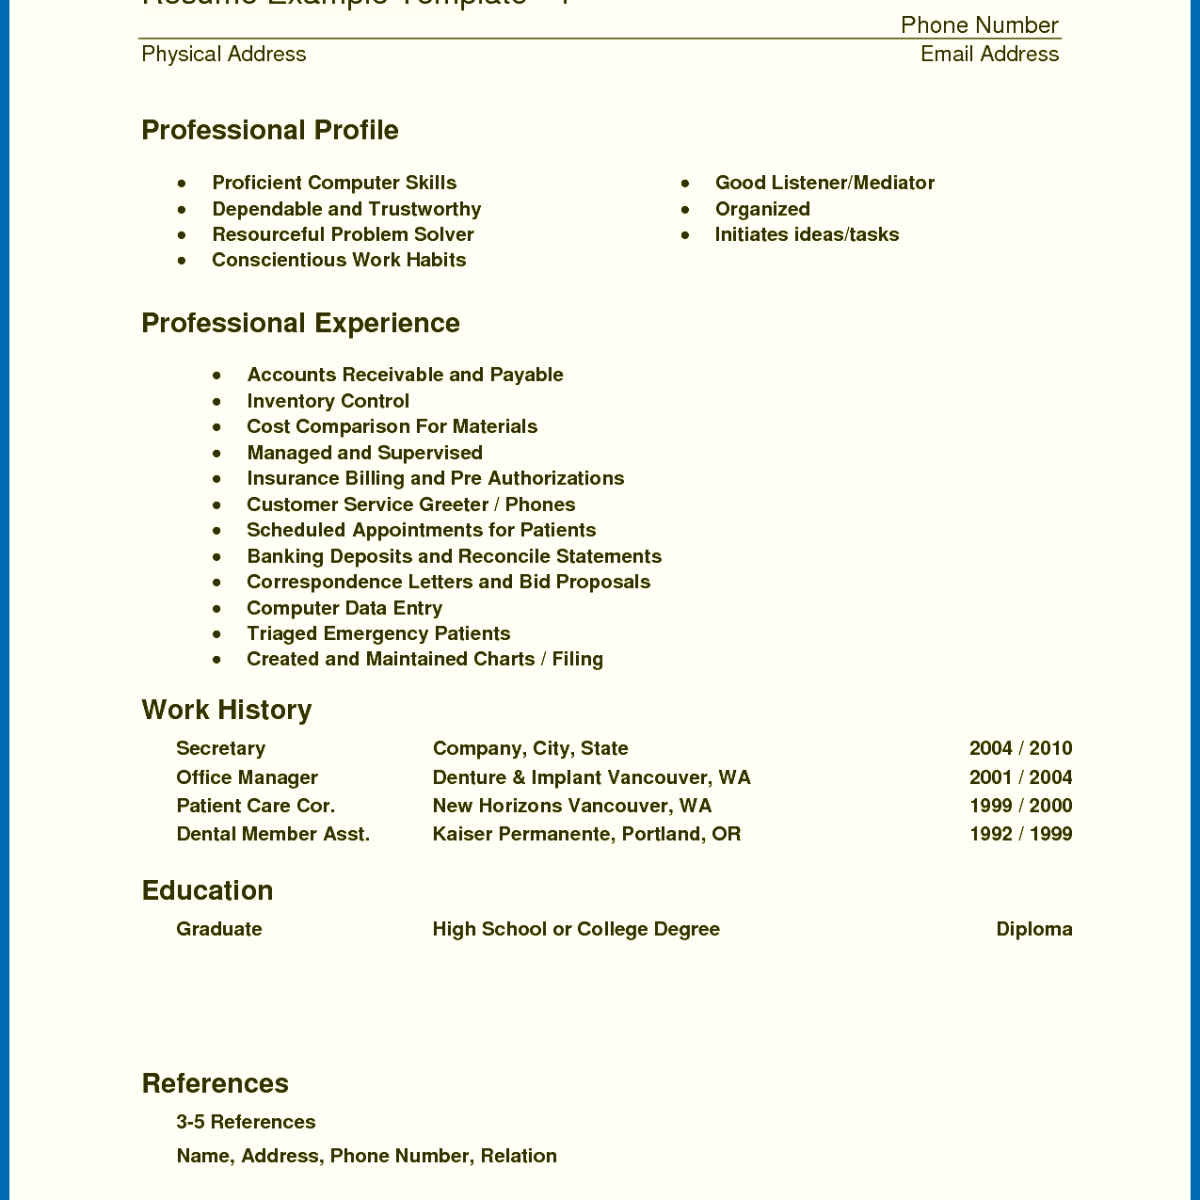 Resume Template for Medical assistant - Resume Medical assistant Examples Awesome Resume Skills for Customer